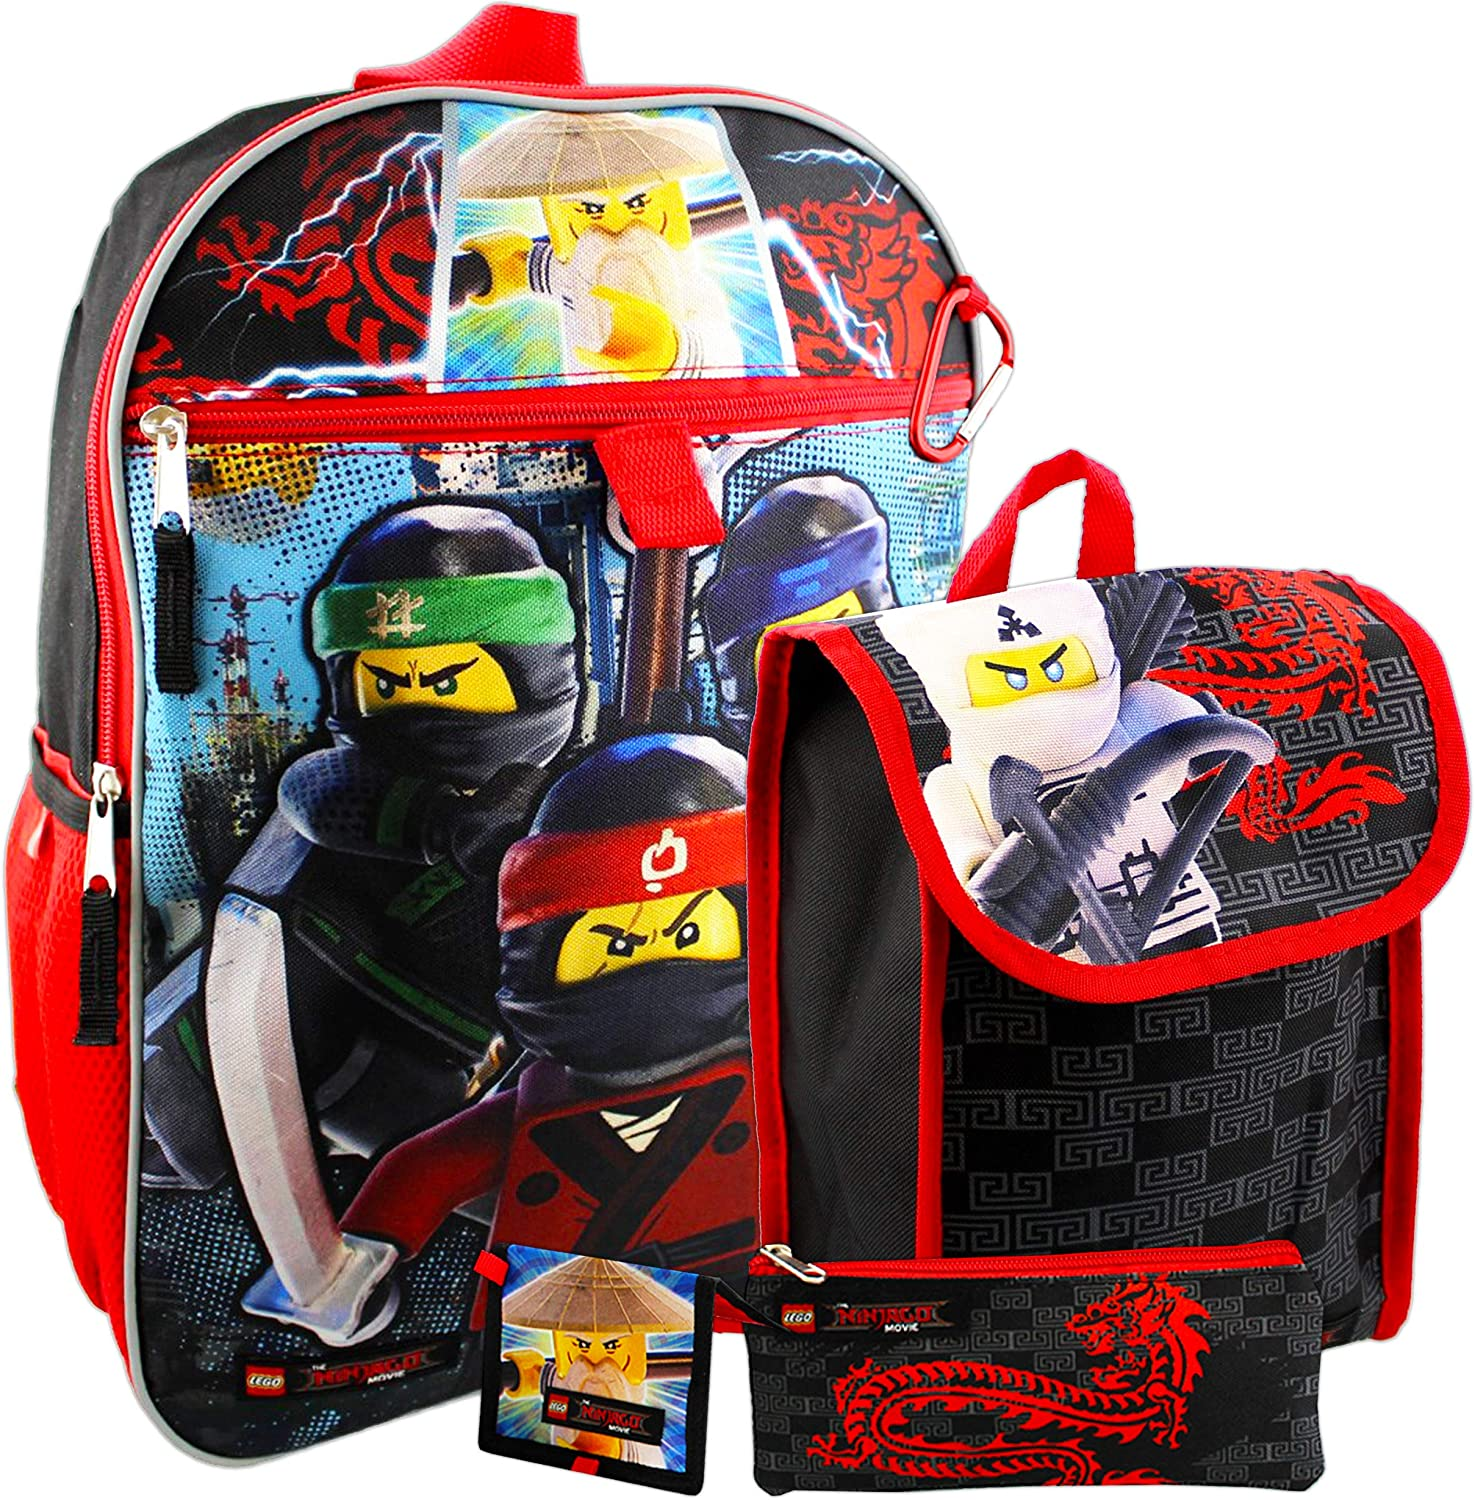 "Fast Forward Lego Ninjago Backpack and Lunch Box Set for Kids Boys Girls -- 5 Pc 16"" Ninjago Backpack, Lunch Bag, Wallet, and More Bundle (Lego Party School Supplies)"